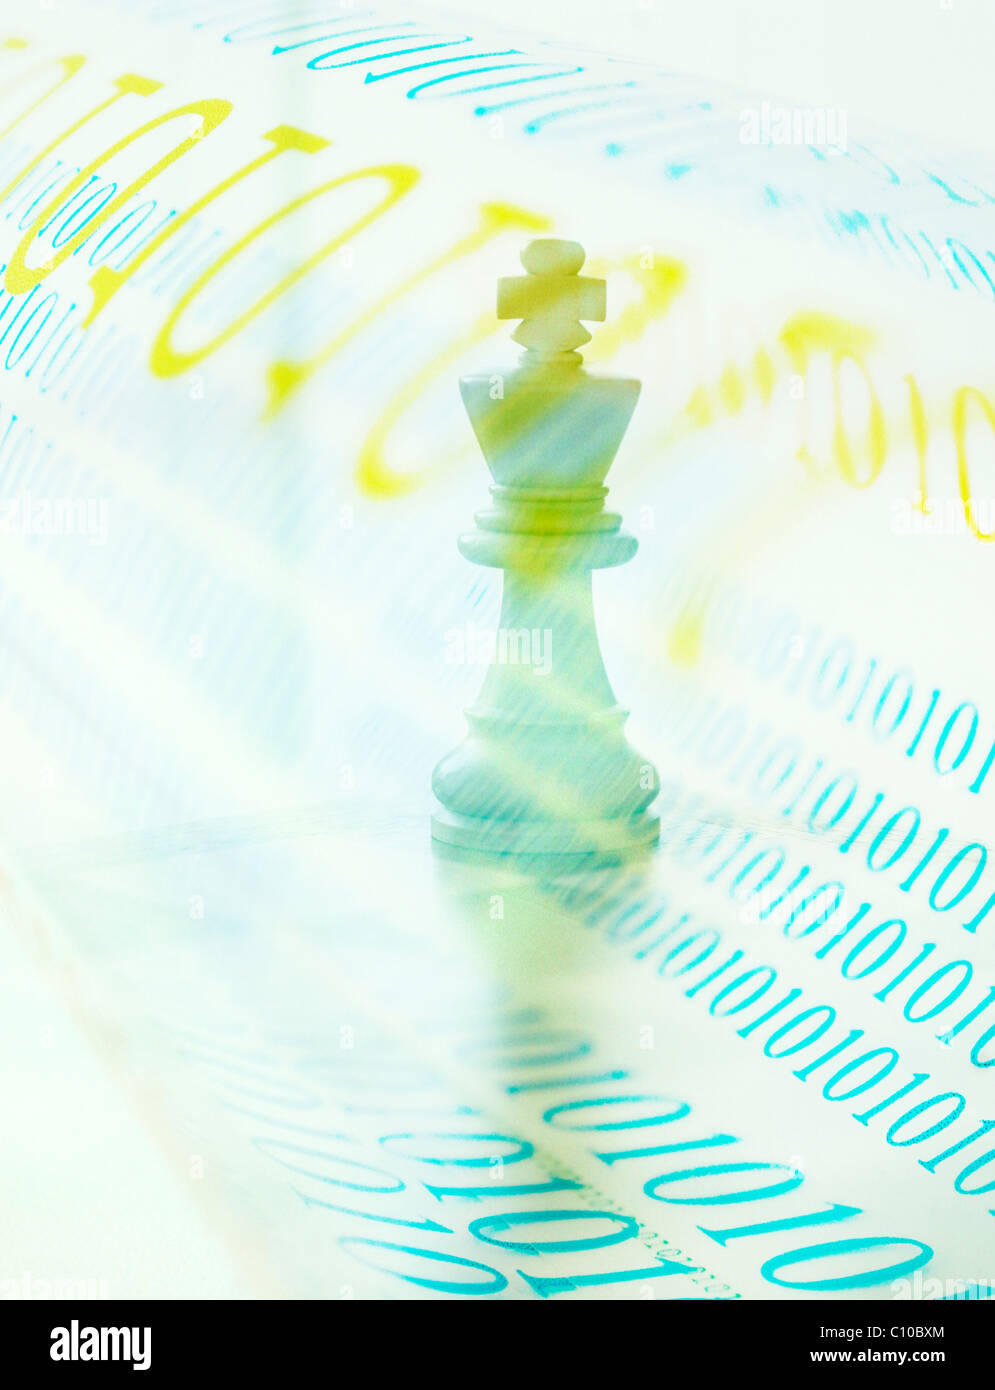 chess king with bits of information 0101010 - Stock Image